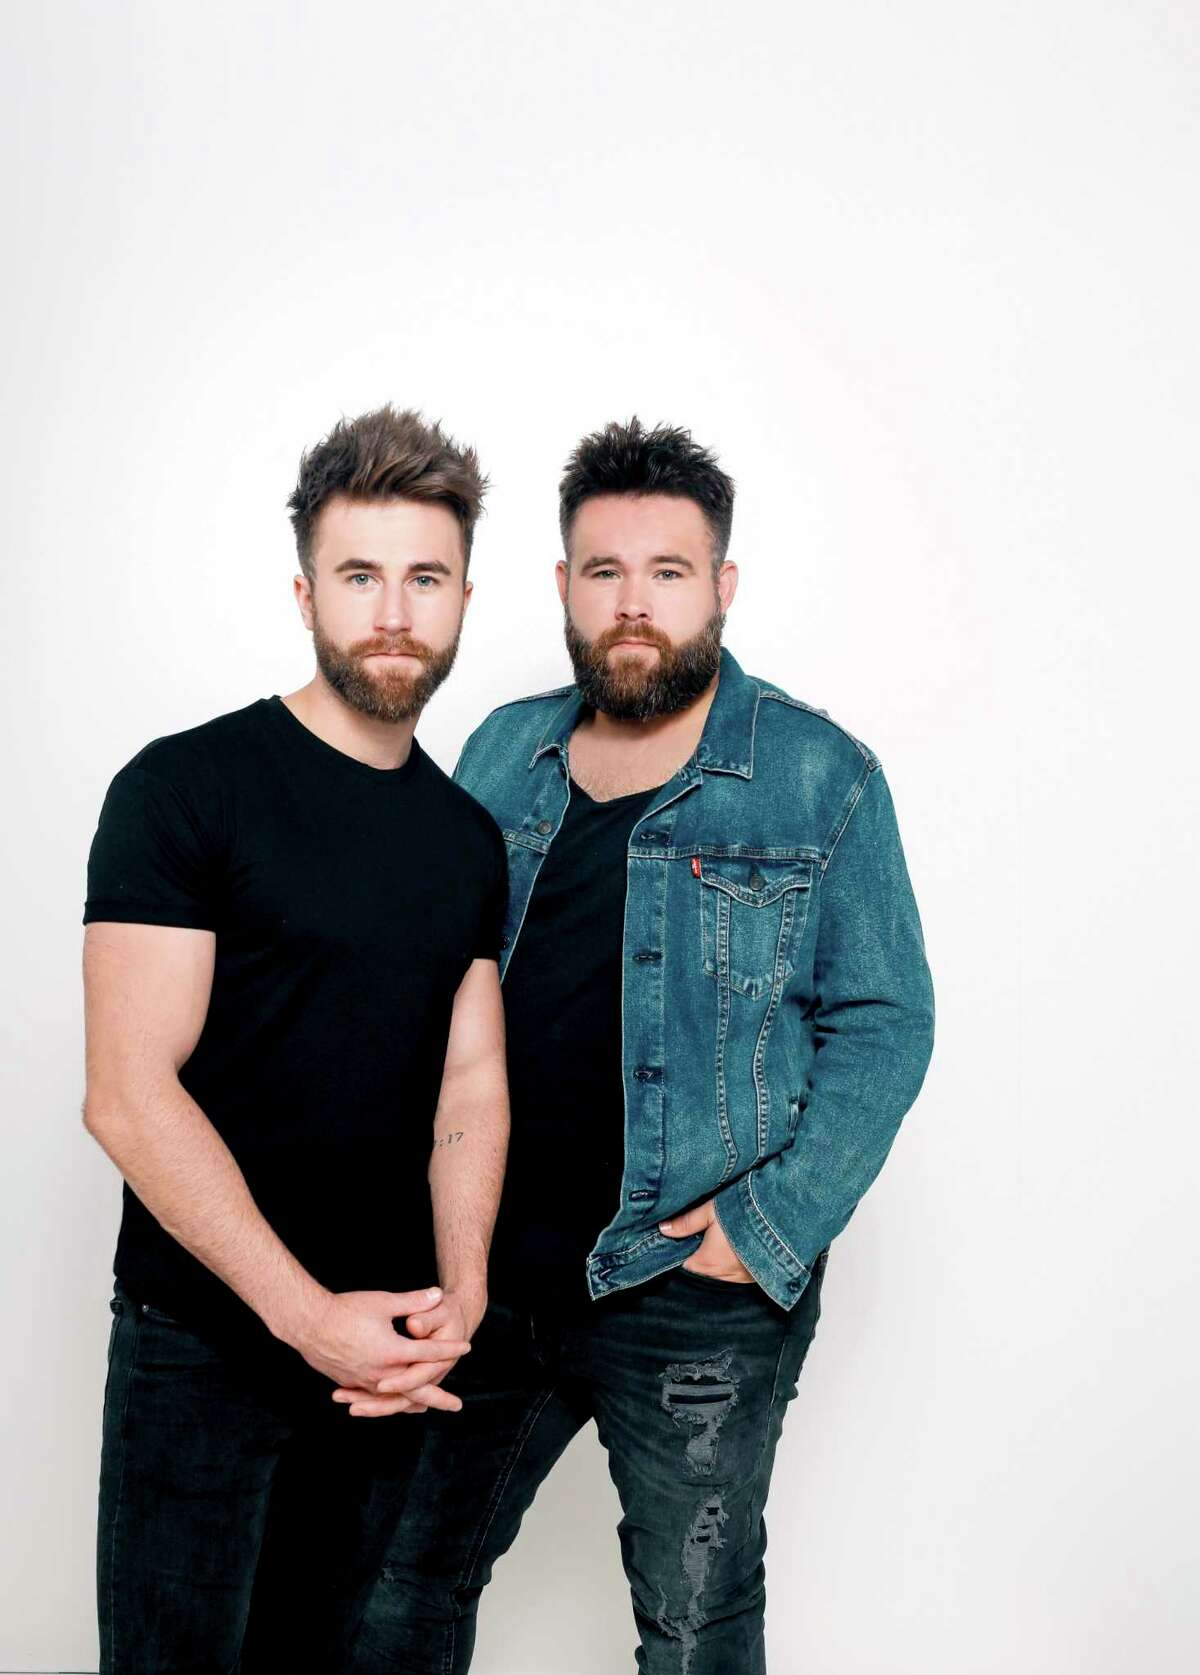 The Swon Brothers are scheduled to perform at the Ramsdell Regional Center for the Arts at 7:30 p.m. on Oct. 8. (Courtesy photo)